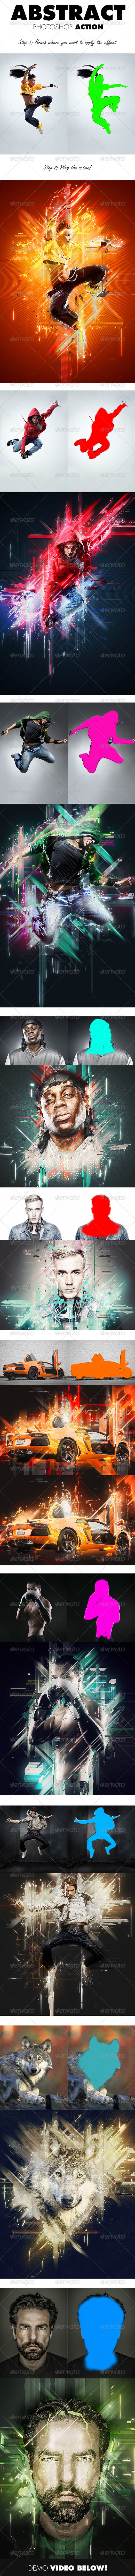 GraphicRiver Abstract Photoshop Action 8677875